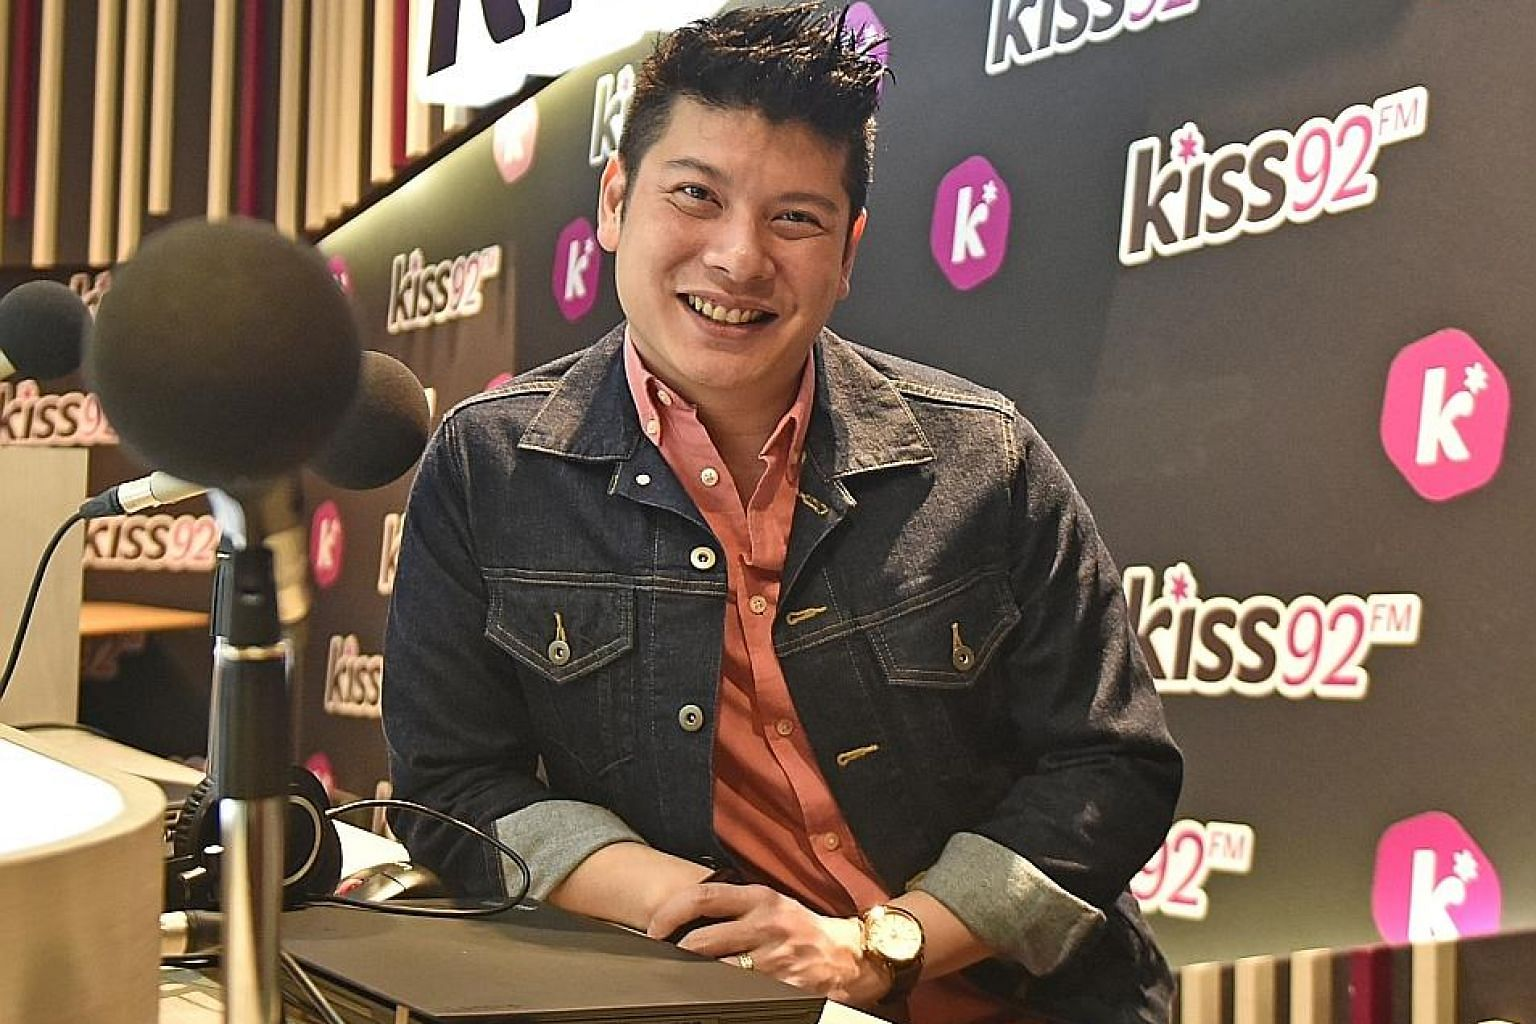 Radio DJ Tim Oh (above) helms the evening drive time show on Kiss92 with Carol Smith.